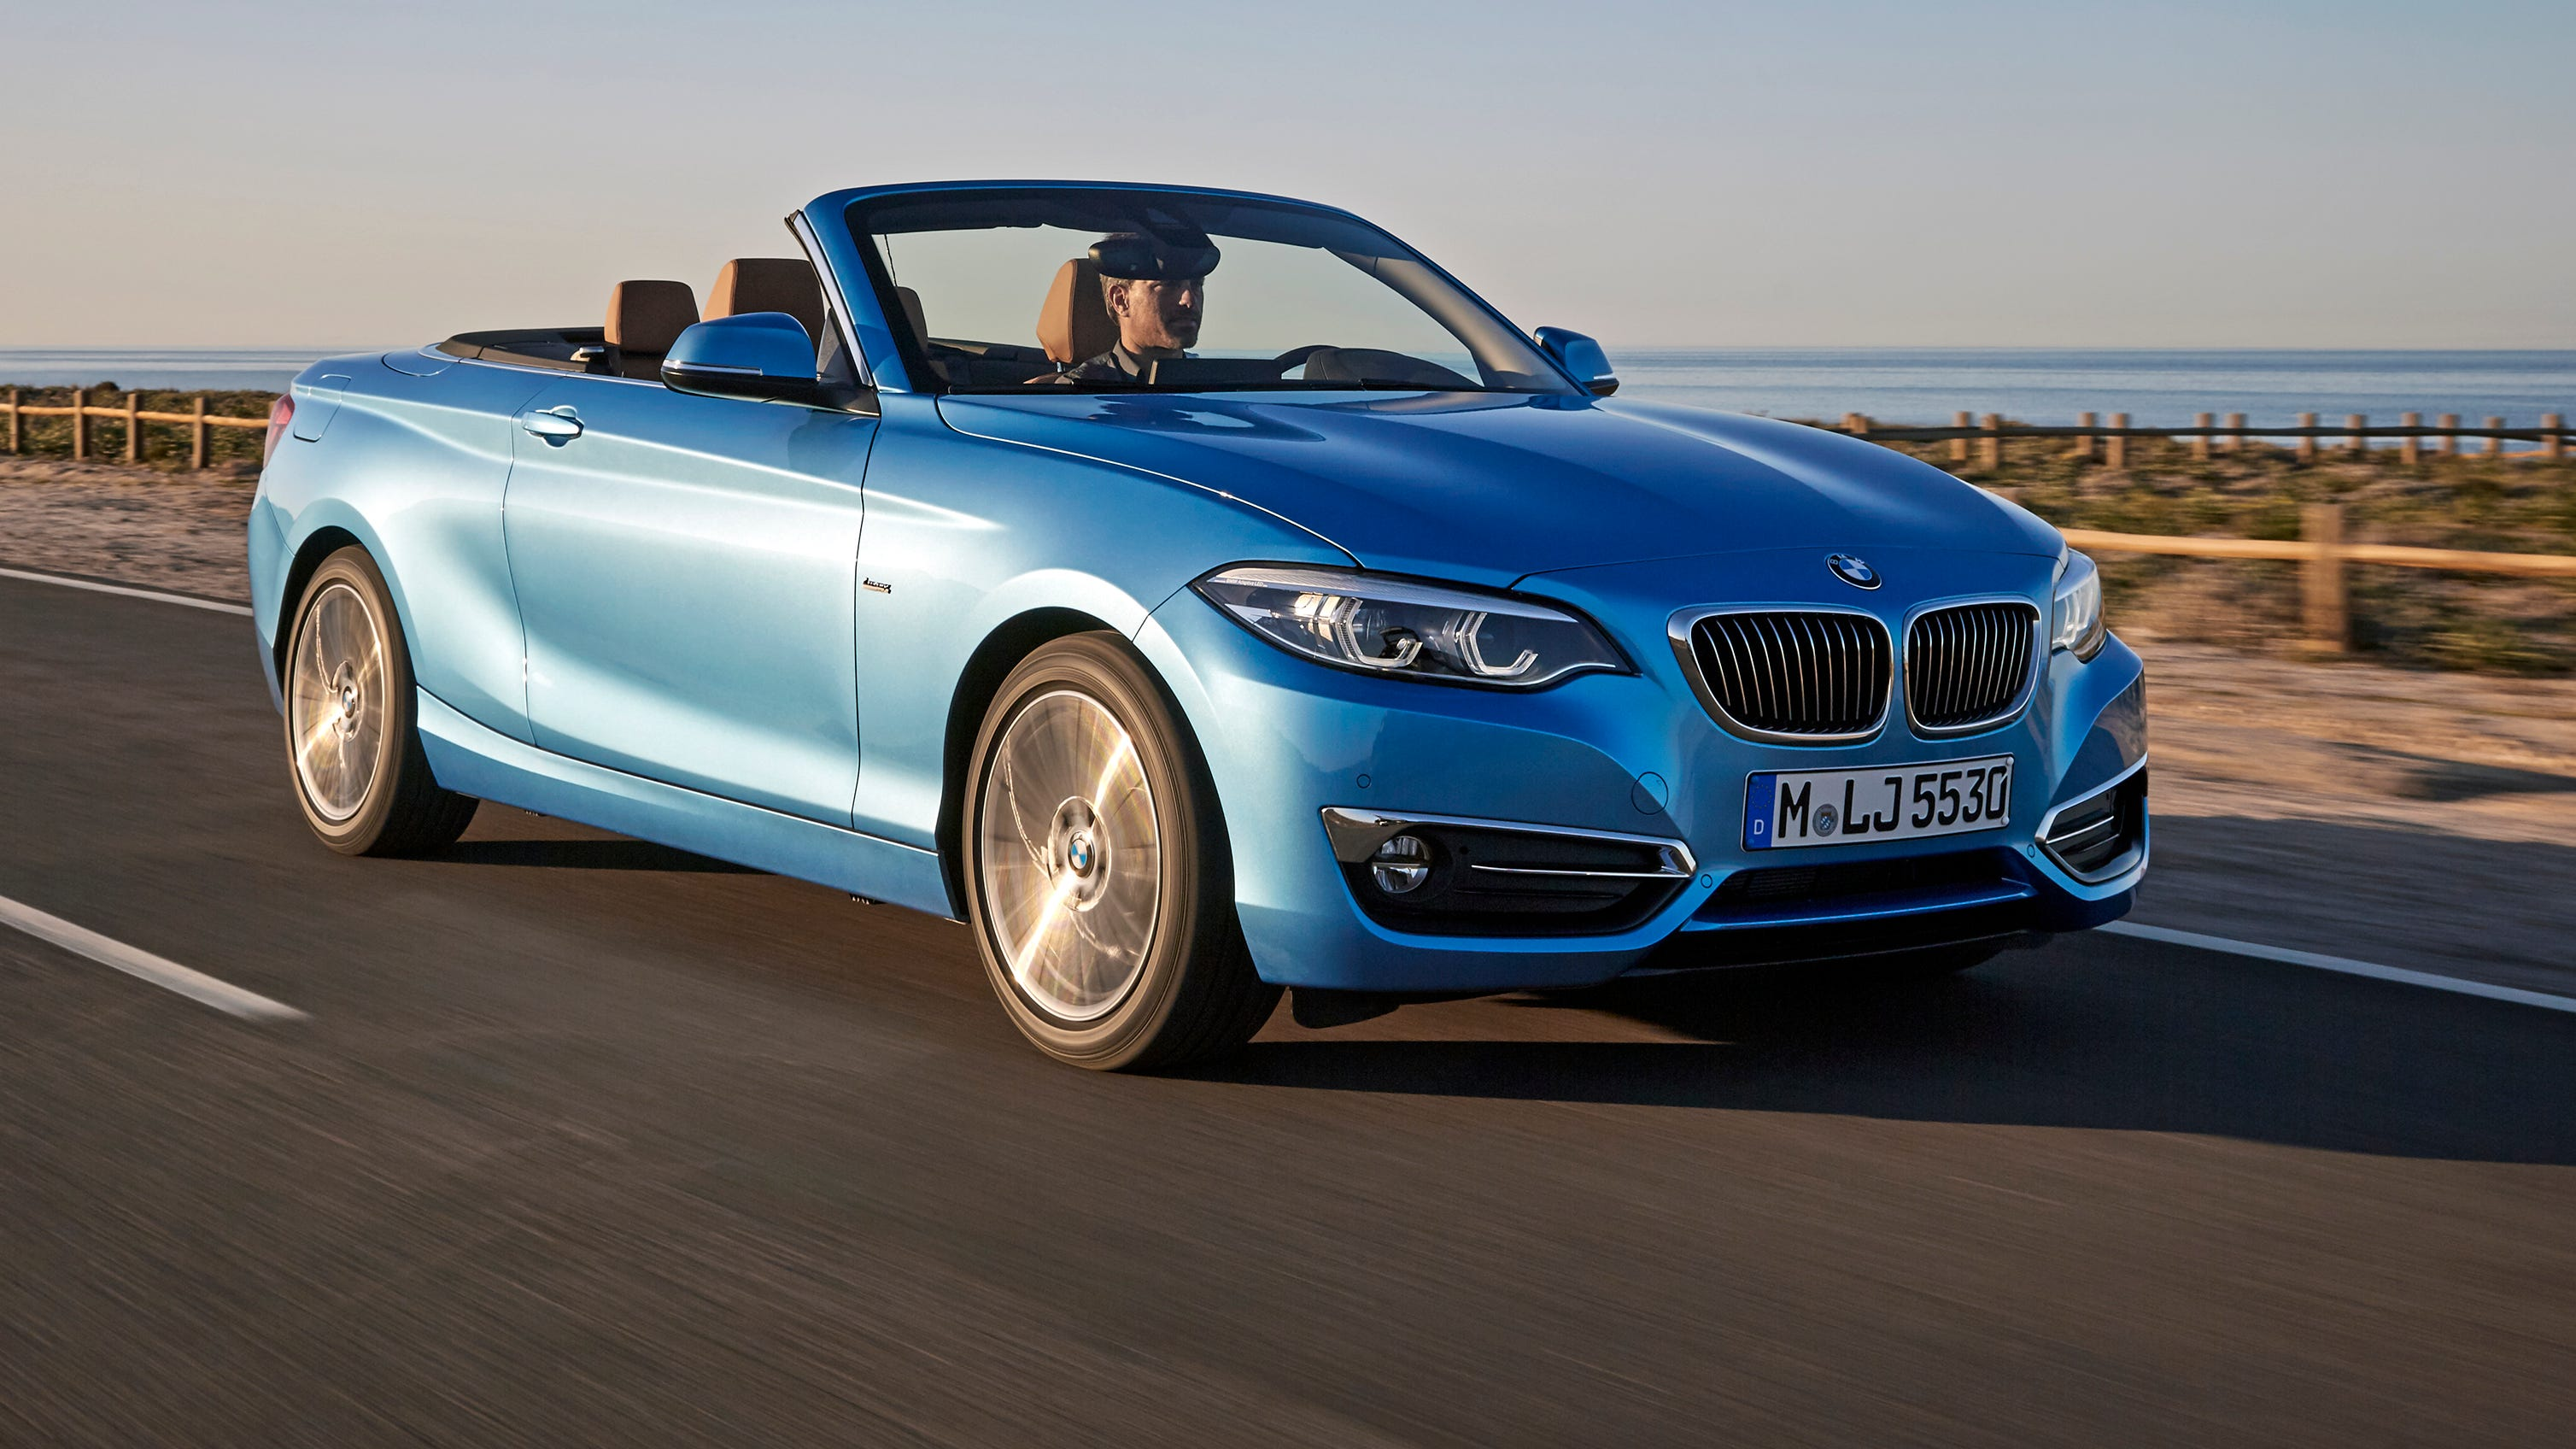 Sporty German soft-tops: BMW M240i vs. Porsche Boxster GTS